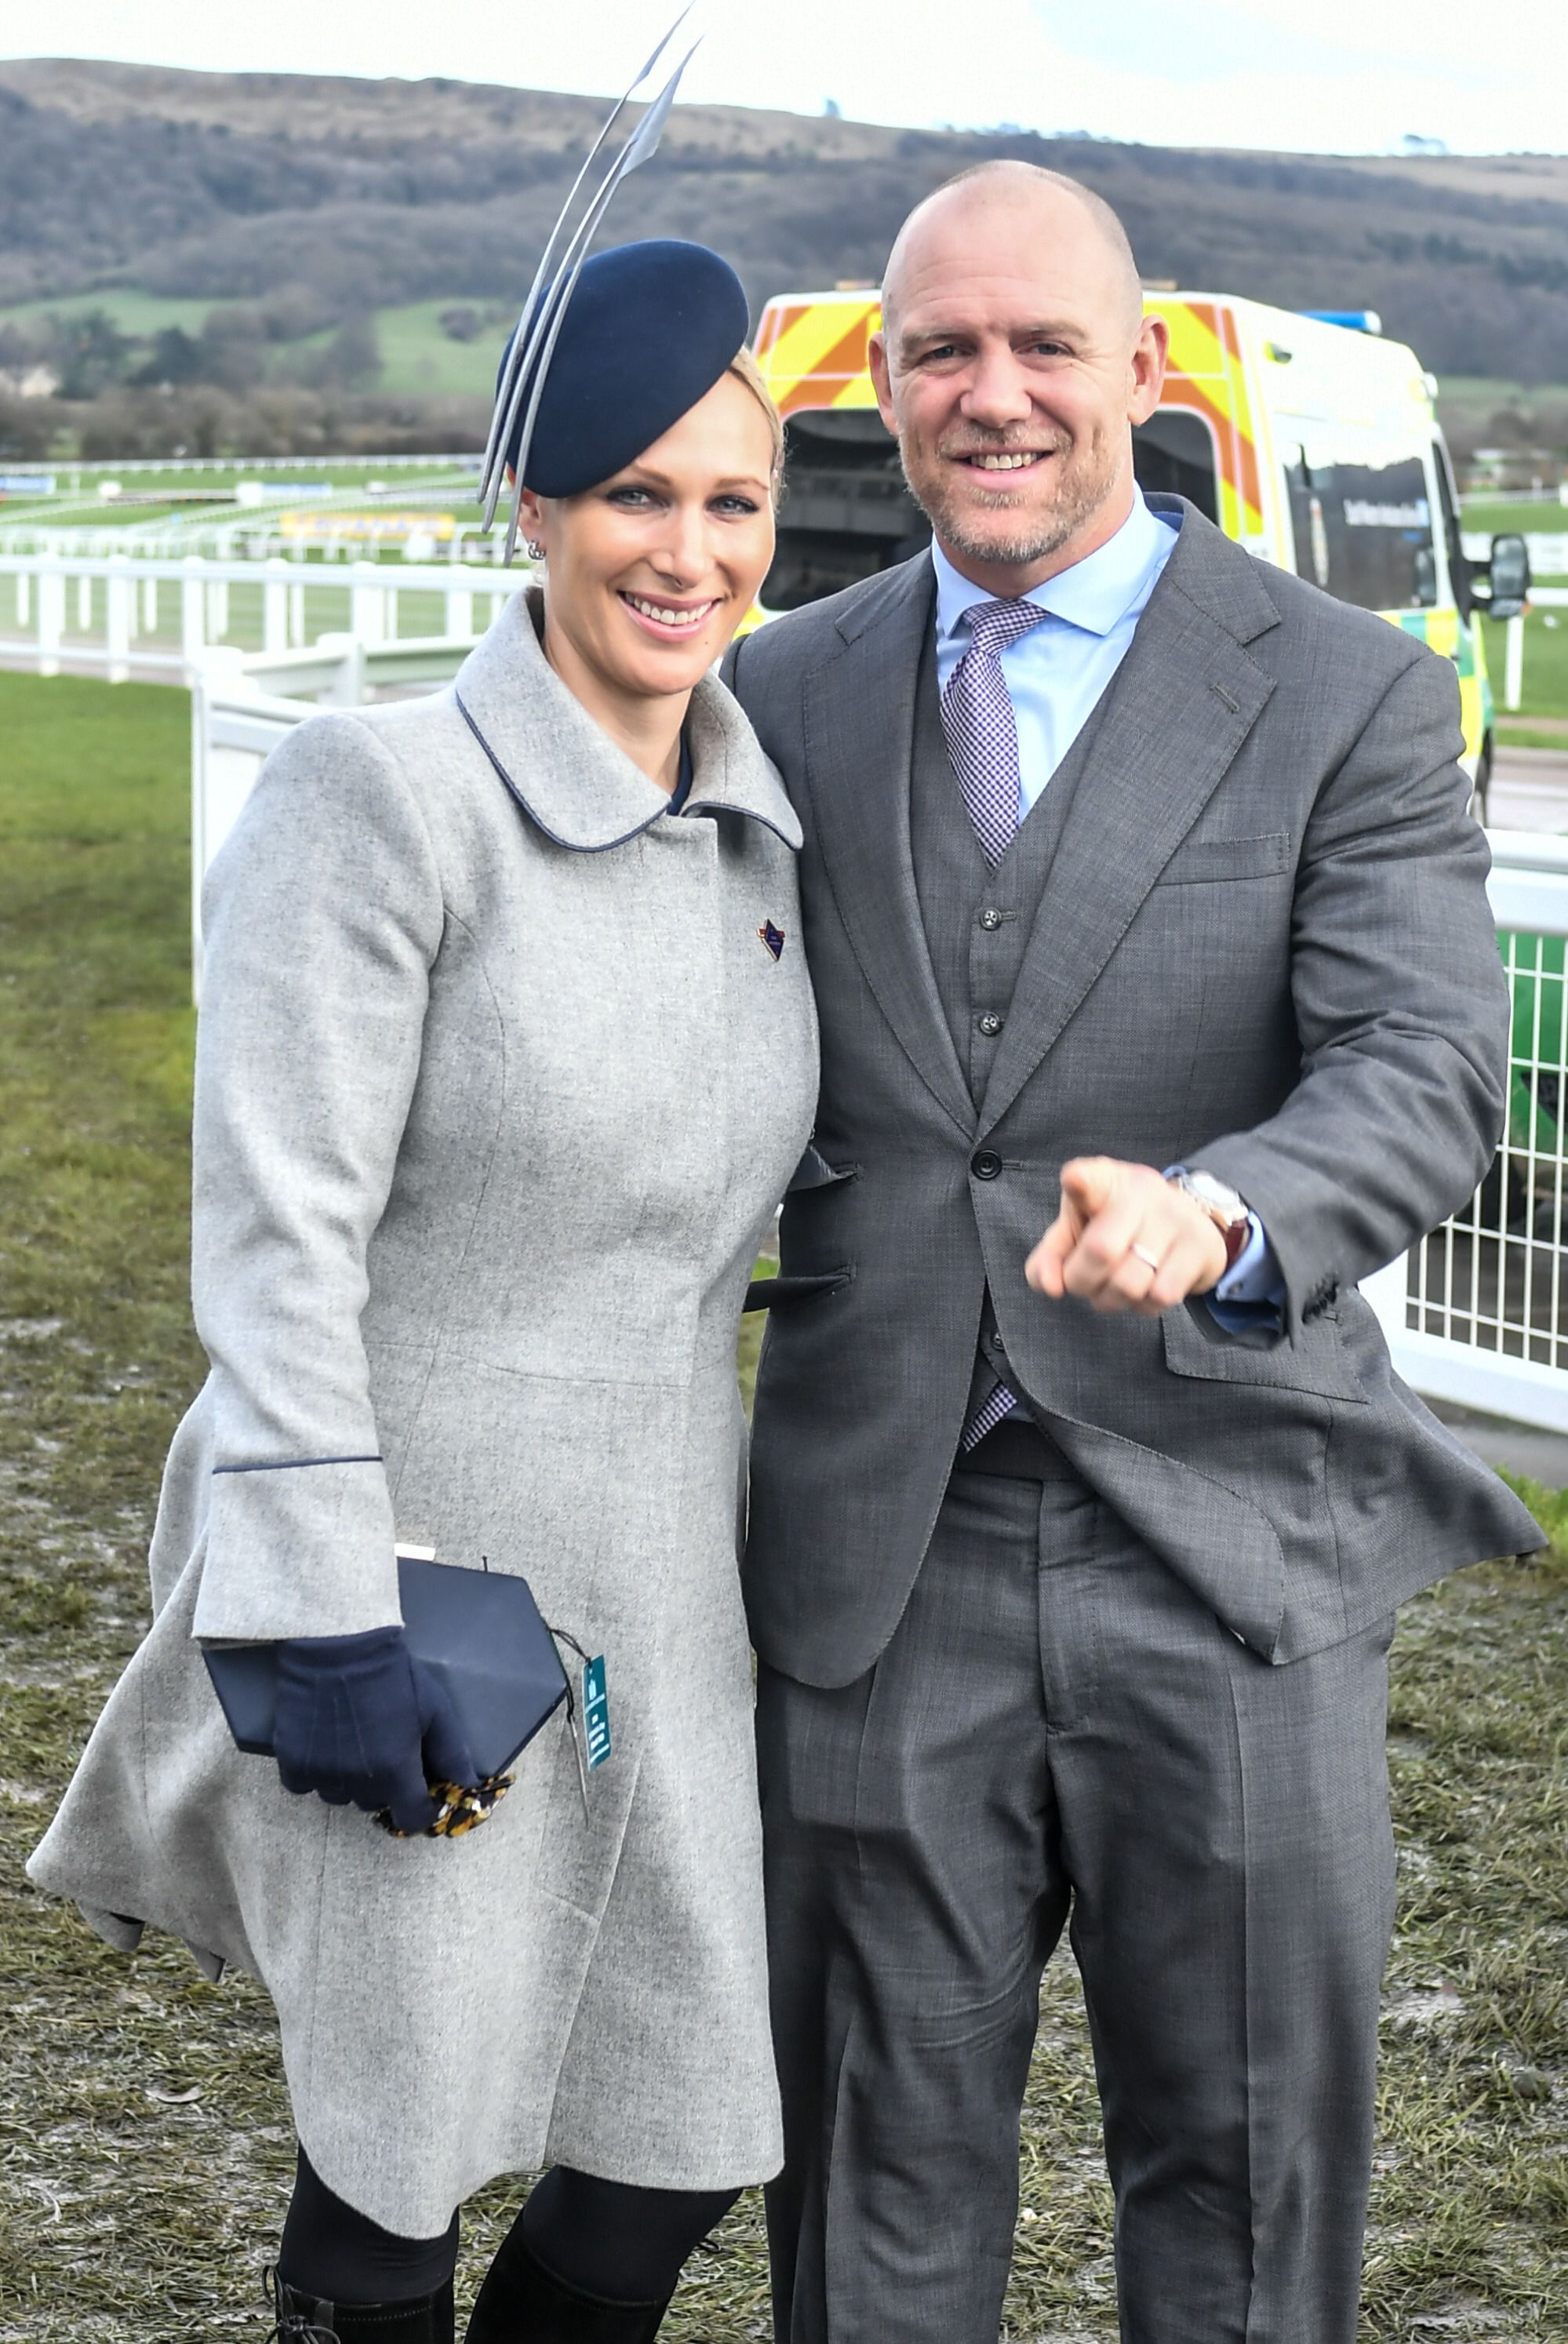 Zara opted for a grey high-neck coat with a navy prism clutch and cocktail hat for a third day at the Cheltenham races.